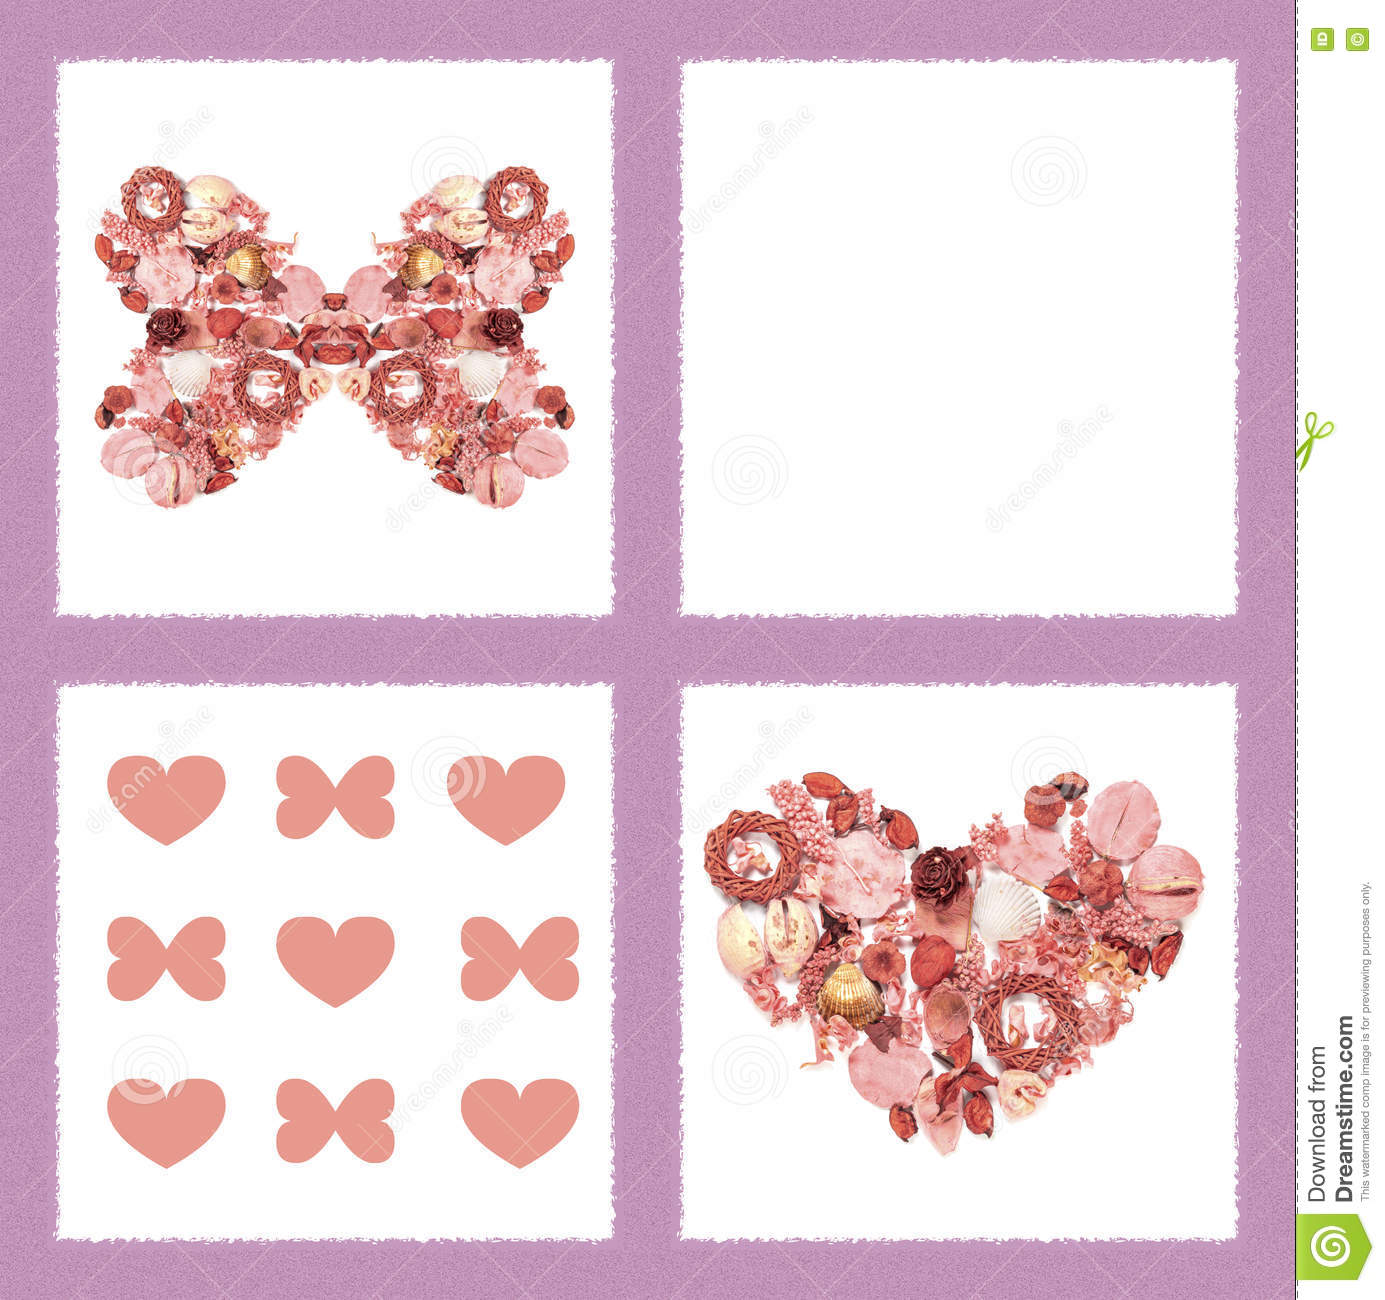 Greeting Card With Dried Flowers In Form Of Butterfly And Heart